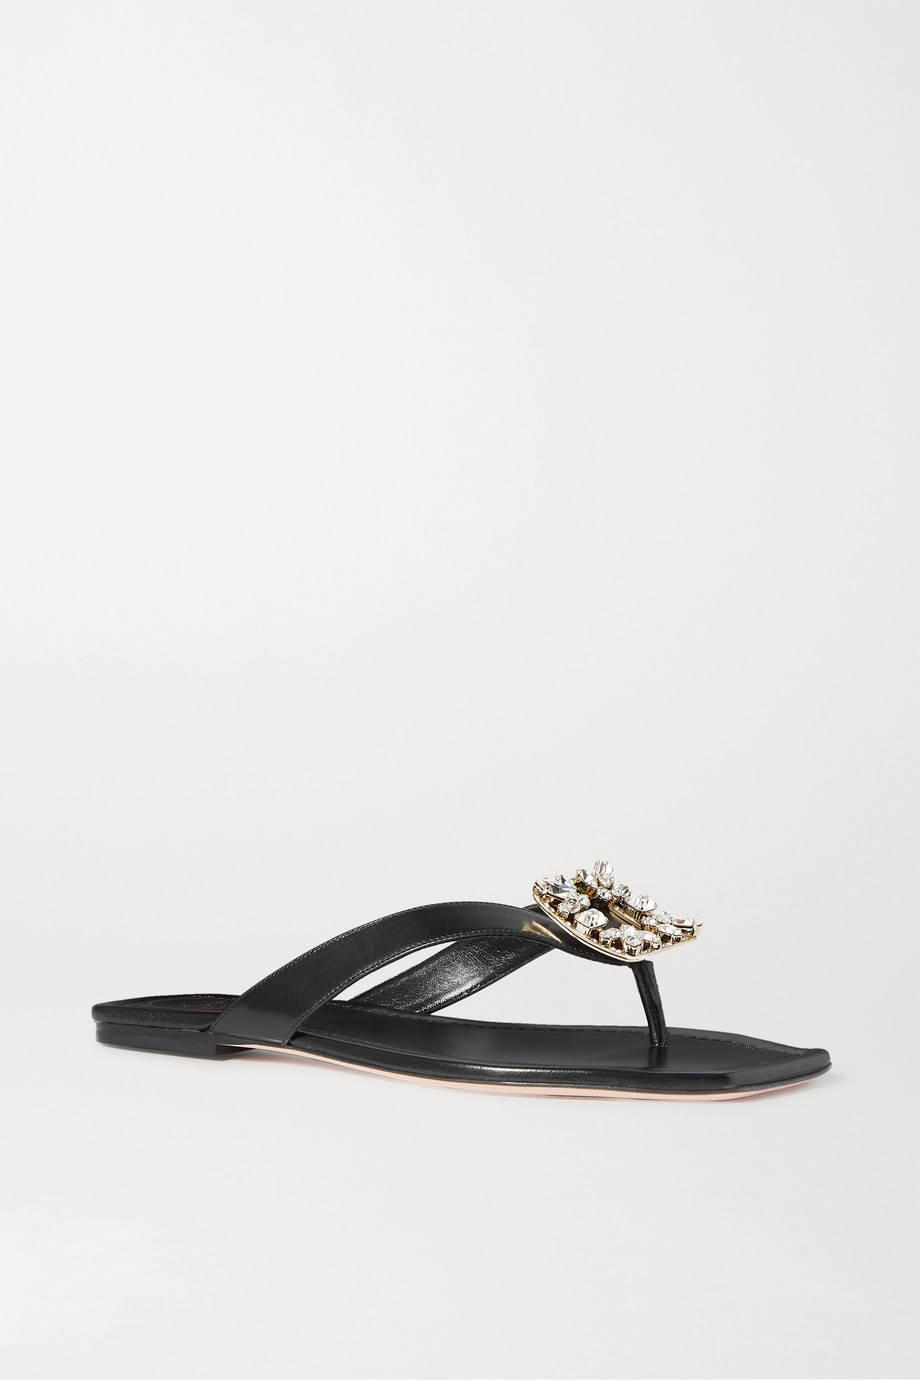 ROGER VIVIER Crystal-embellished leather flip flops